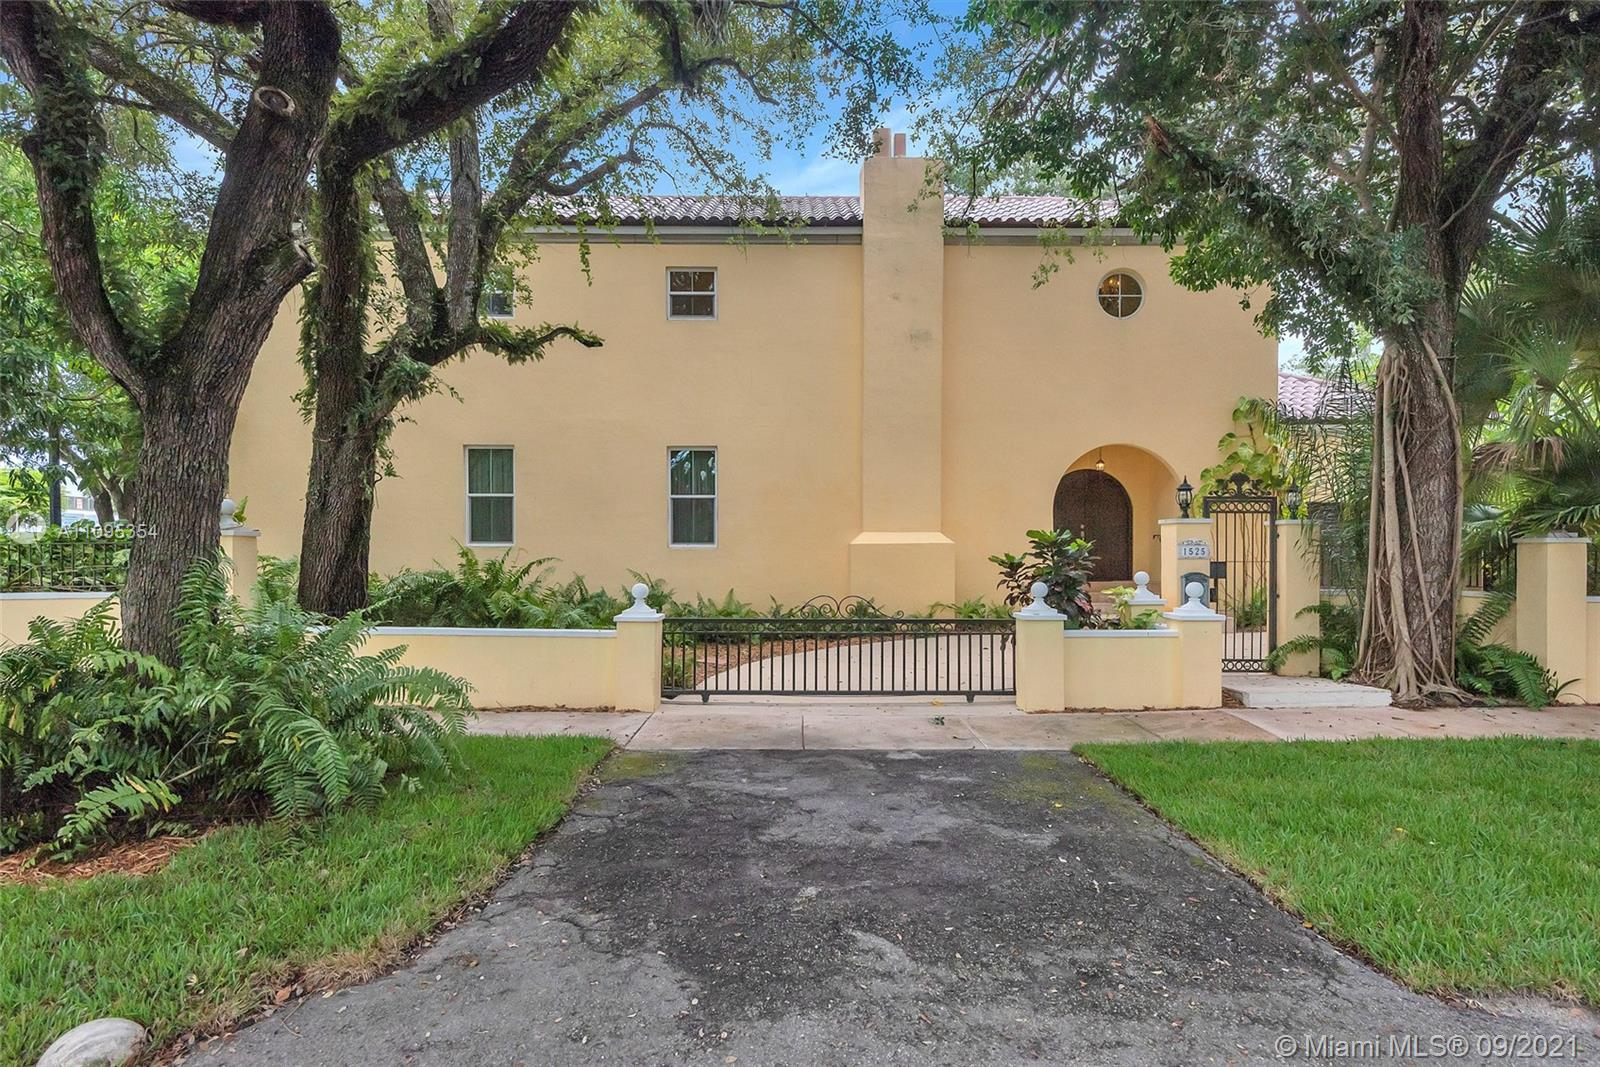 This beautiful Tuscan Home located near The Coral Gables Water Tower. It sits on a corner lot of .25 acres, blocks from Dade's highest point (no flood insurance ), a new roof completed in 9-1- 21 Warranty 12 yr.. Its quality construction is evident in the outstanding appointments of high ceilings & high arches giving it an air of grandeur, embraces an old-world look with all the modern amenities, emphasizing windows & exterior doors (all impact) that flood the interior spaces with natural light, while maintaining a privacy,oversized private tropical garden with many fruit trees (mangoes, avocados, bananas, etc.),flowers, lovely garden of various herbs. With space for a pool, four blocks from the Coral Gables Country Clubs. the gorgeous Venetian Pool available to all Coral Gables residents.